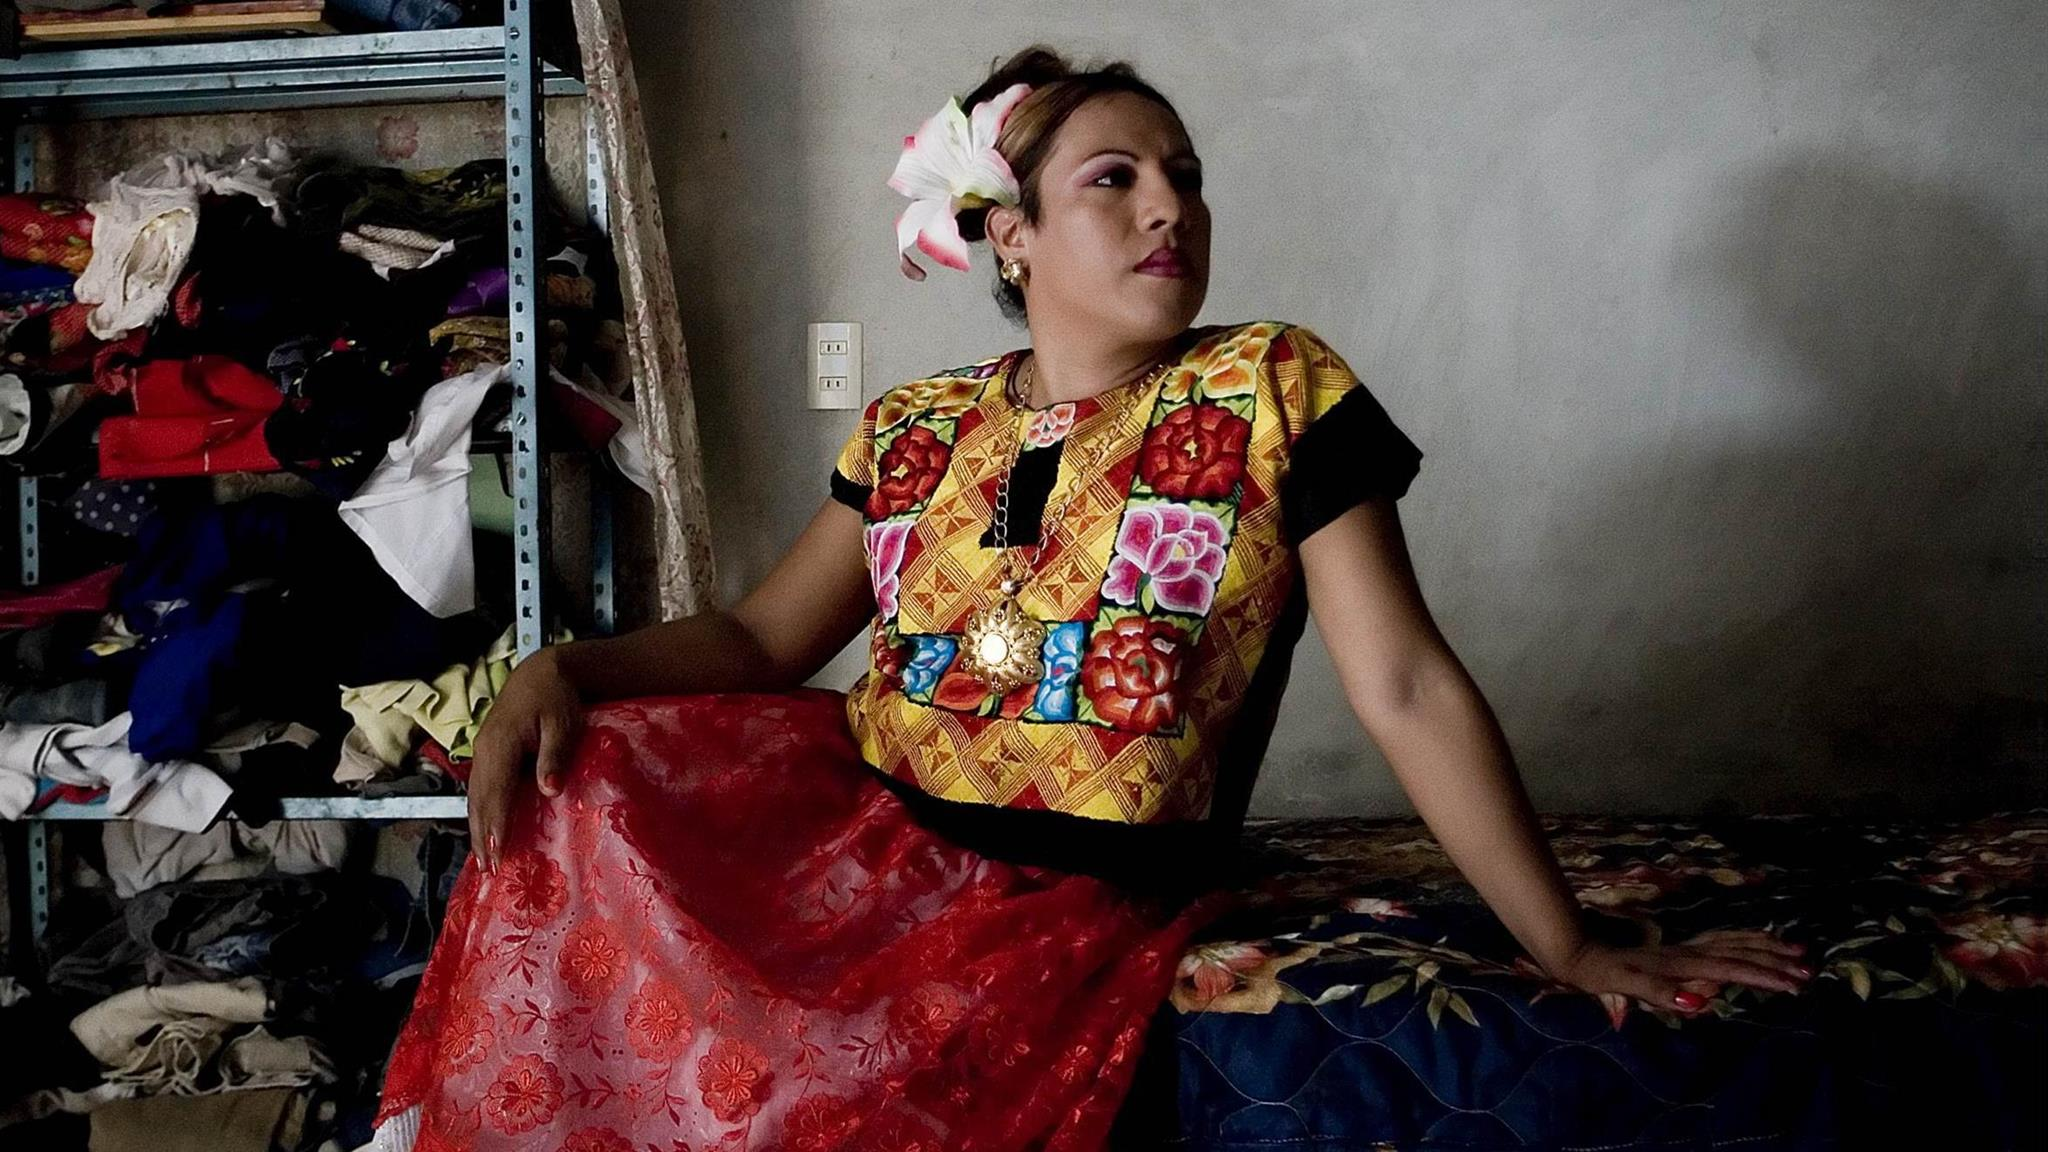 Macho Mexico's Muxe Shake Up Stereotypes